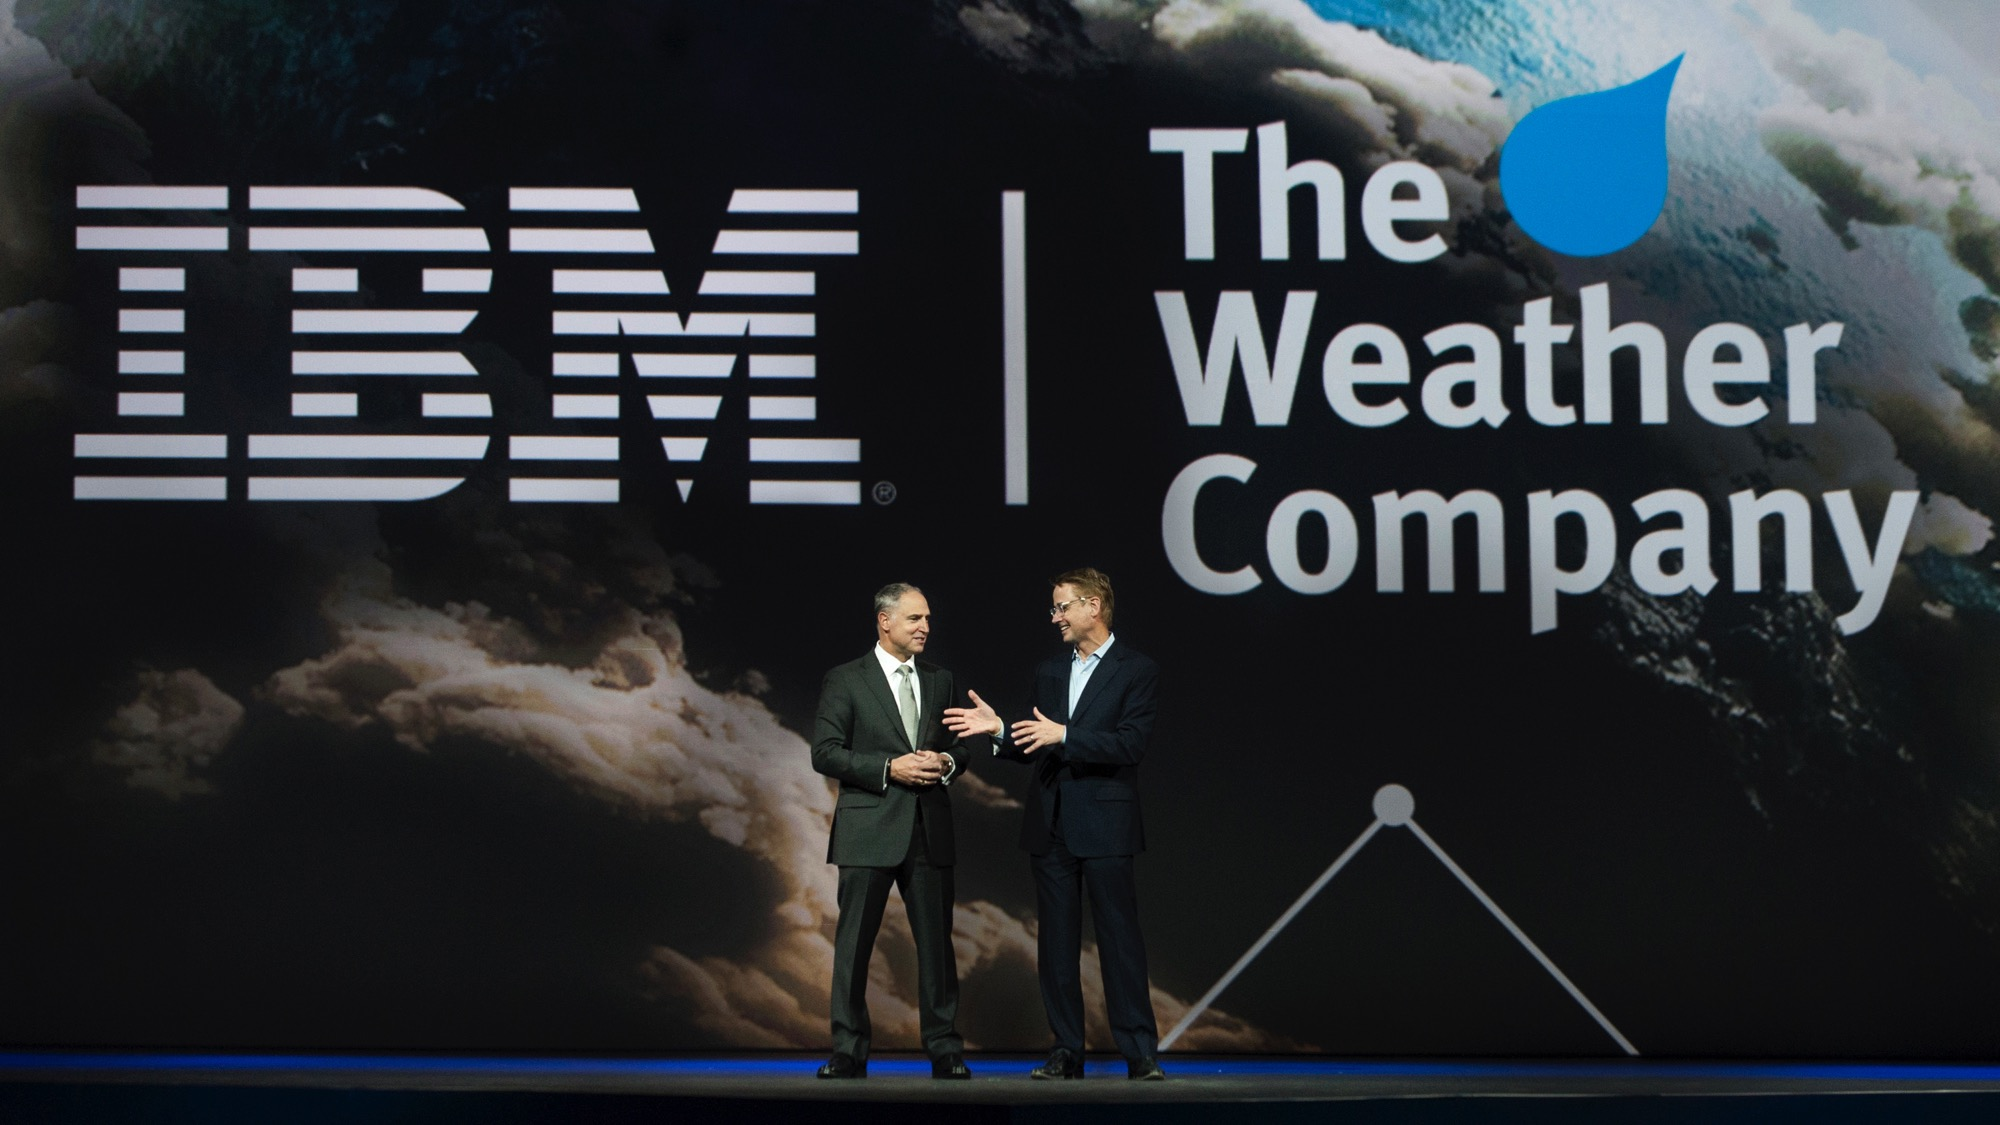 IBM is going to change how we forecast the weather with